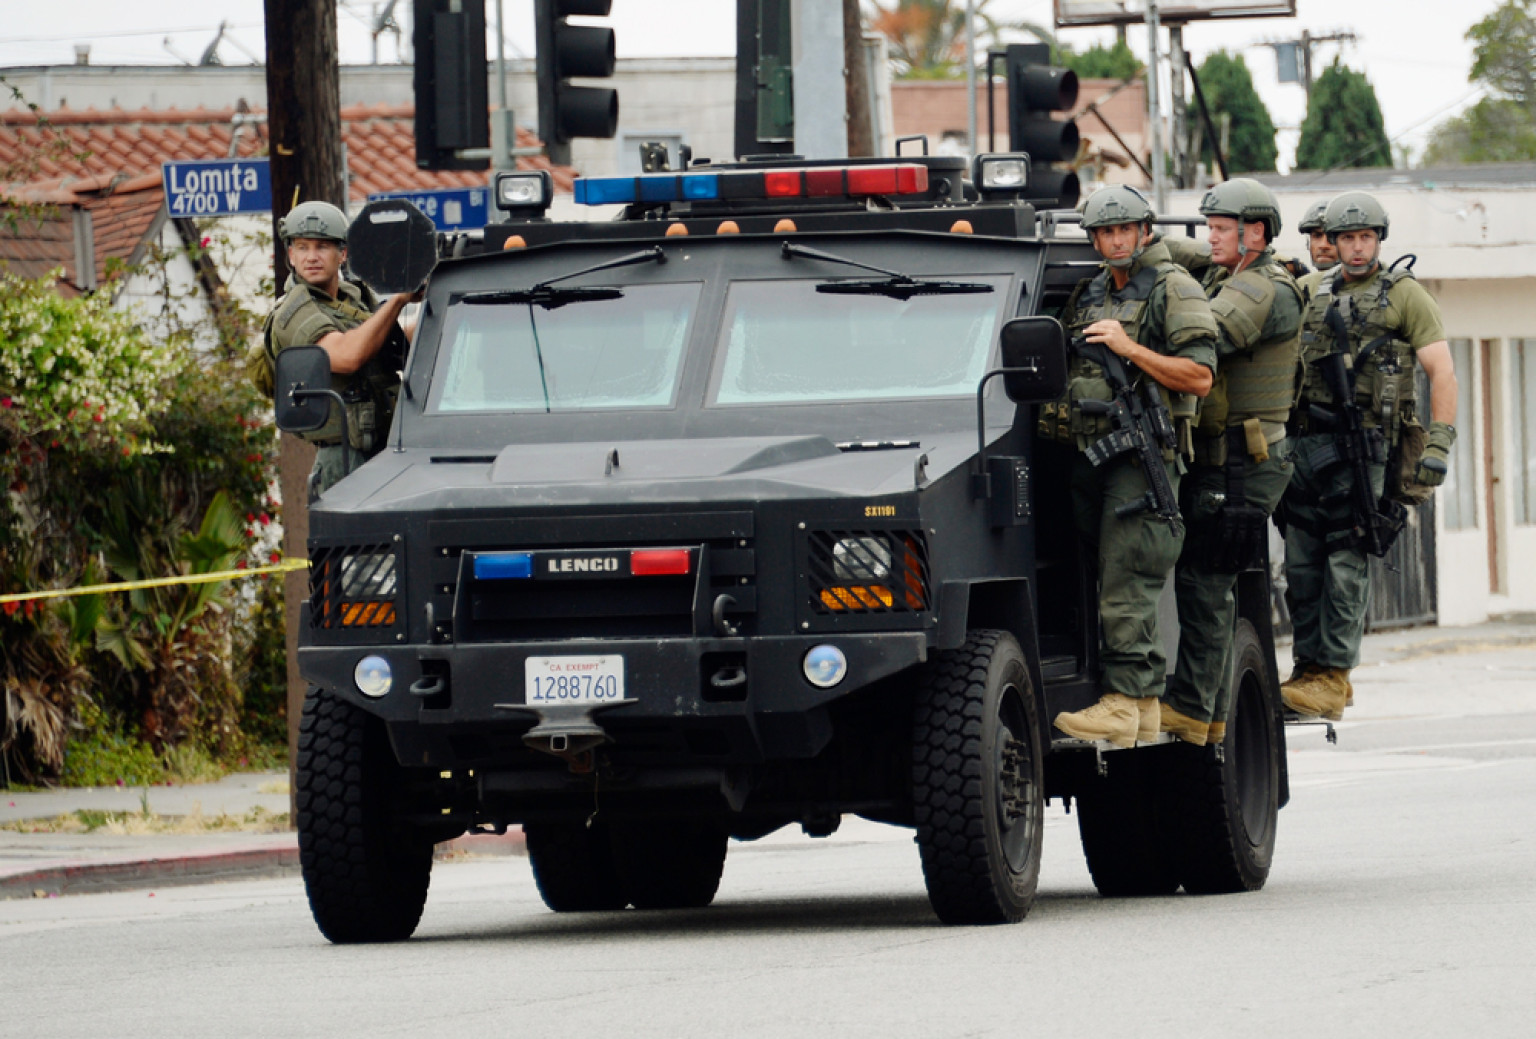 Lapd bomb squad truck google search armored police for Patriot motors oakland md